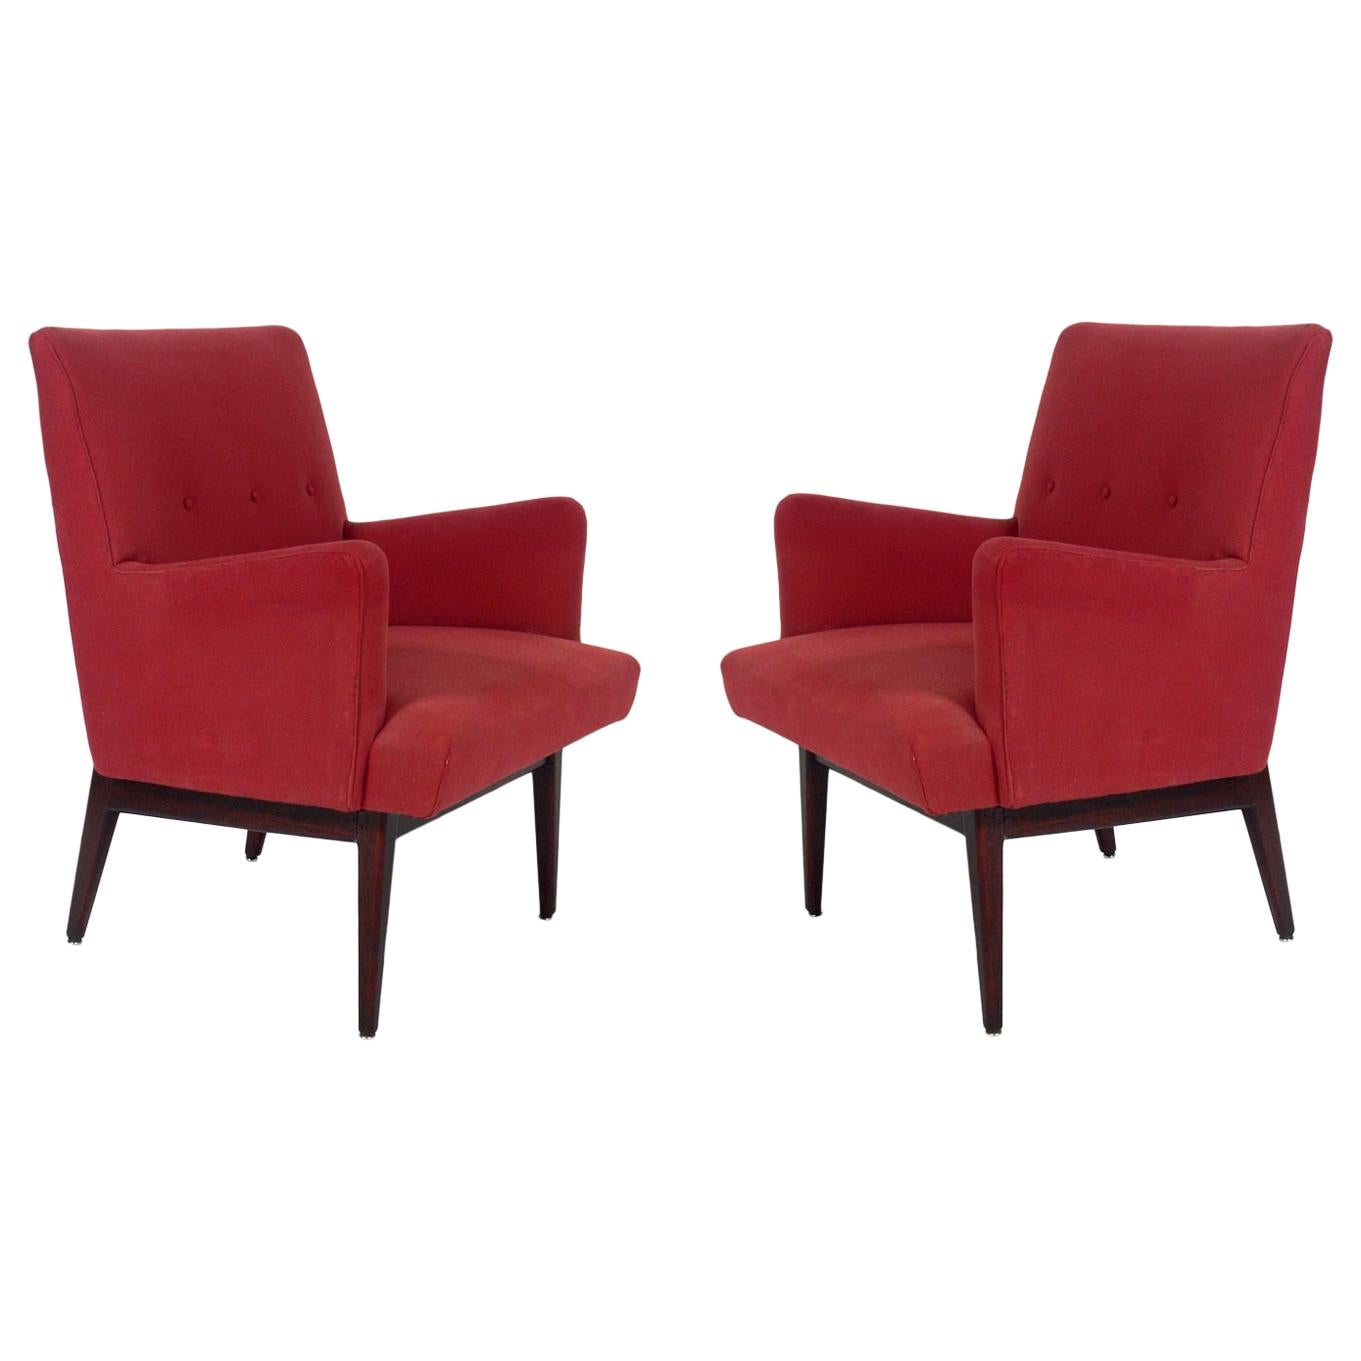 Jens Risom Lounge Chairs